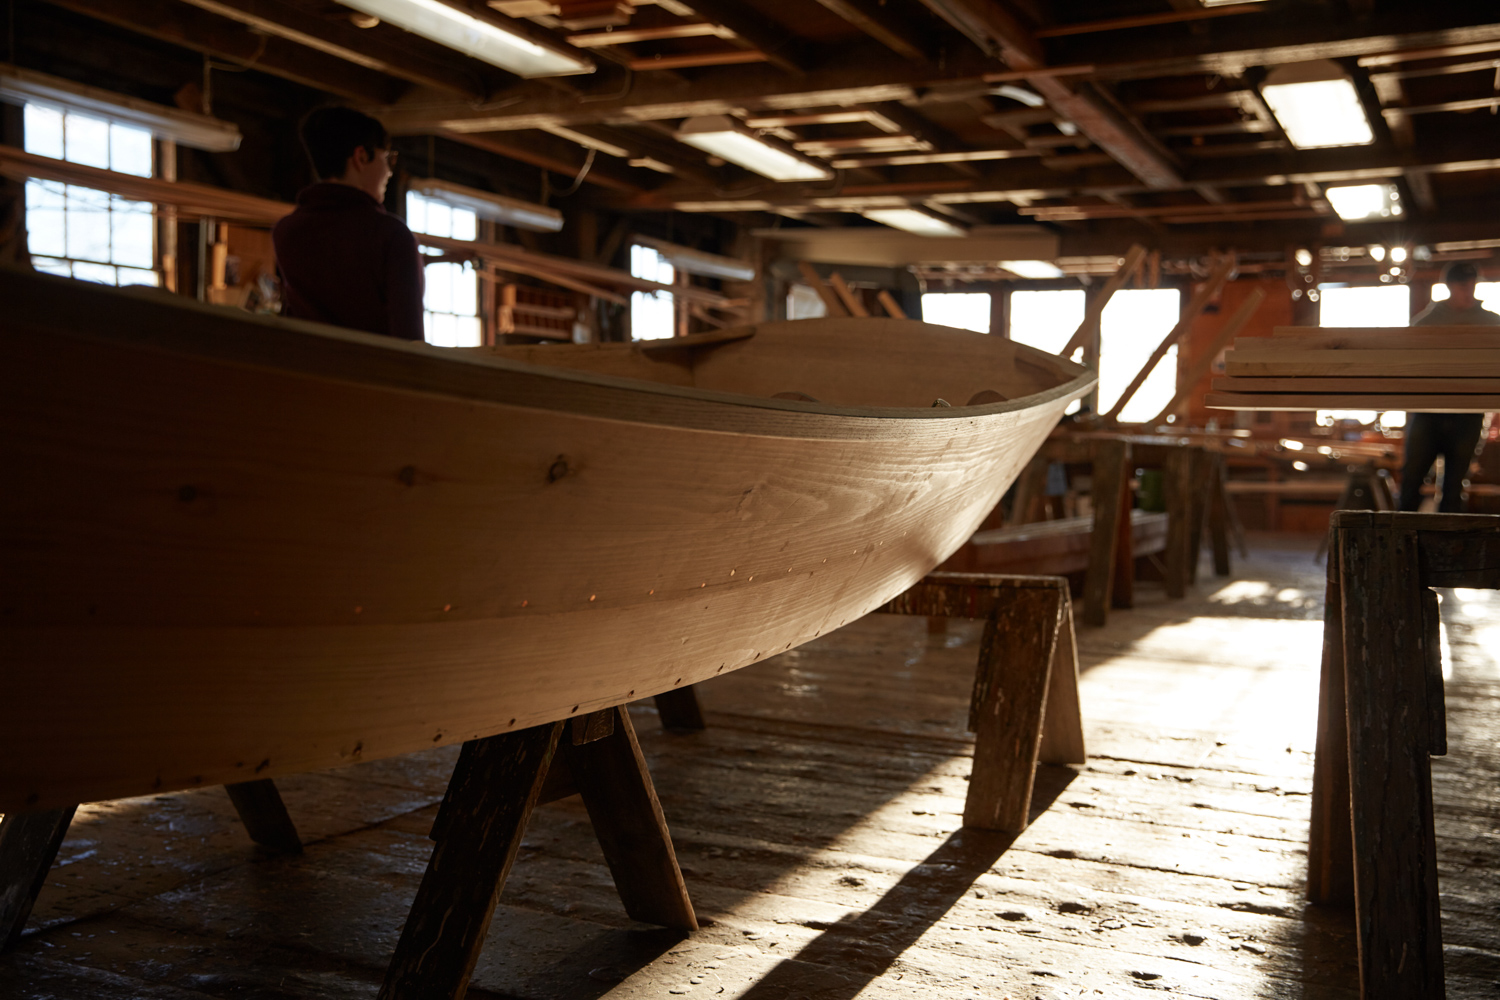 Boat school small unfinished craft